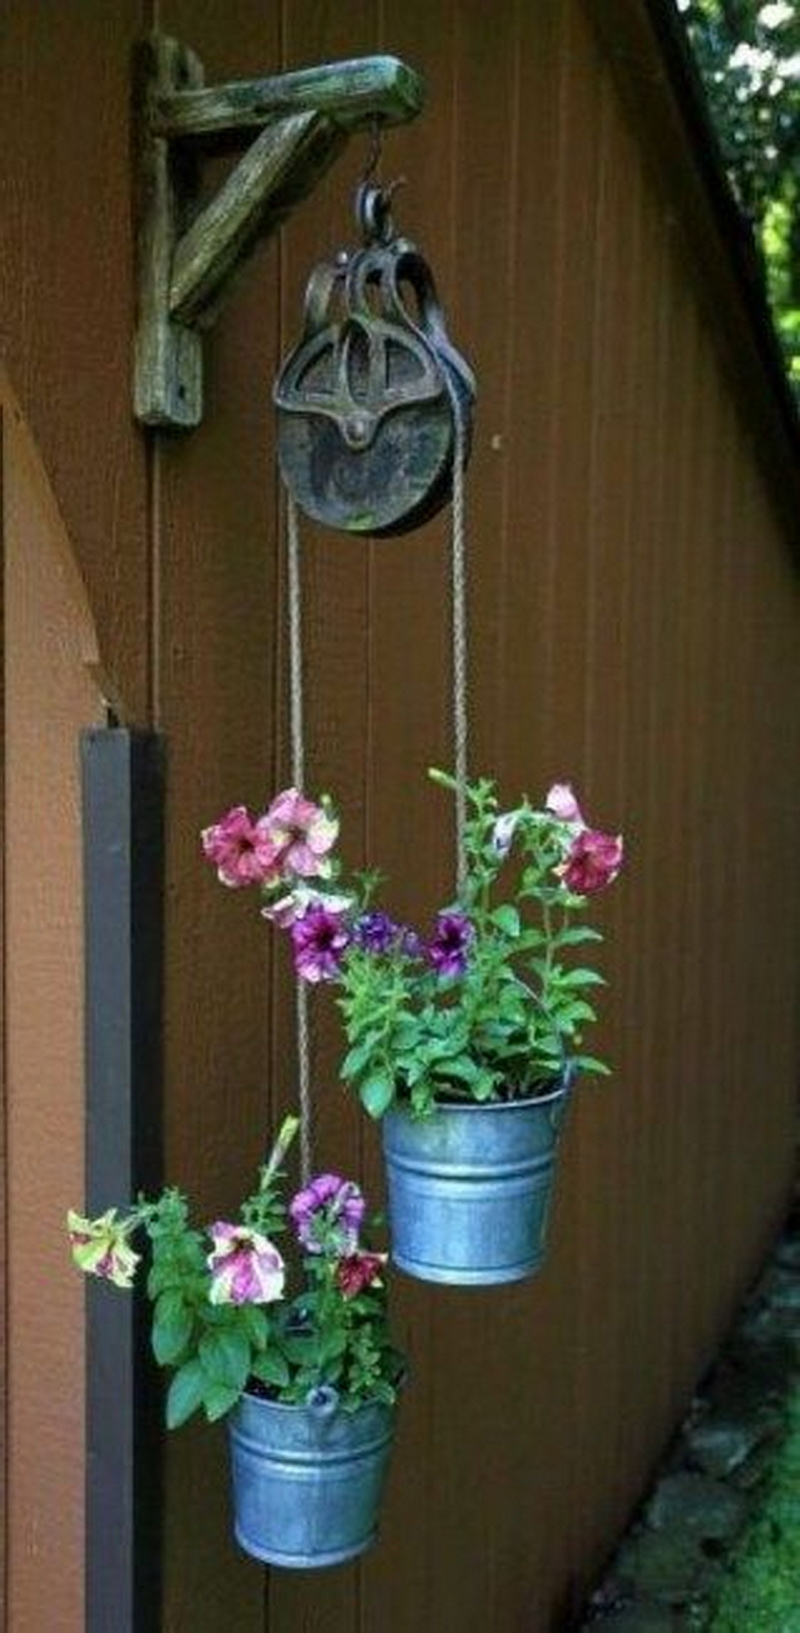 6. old pulley